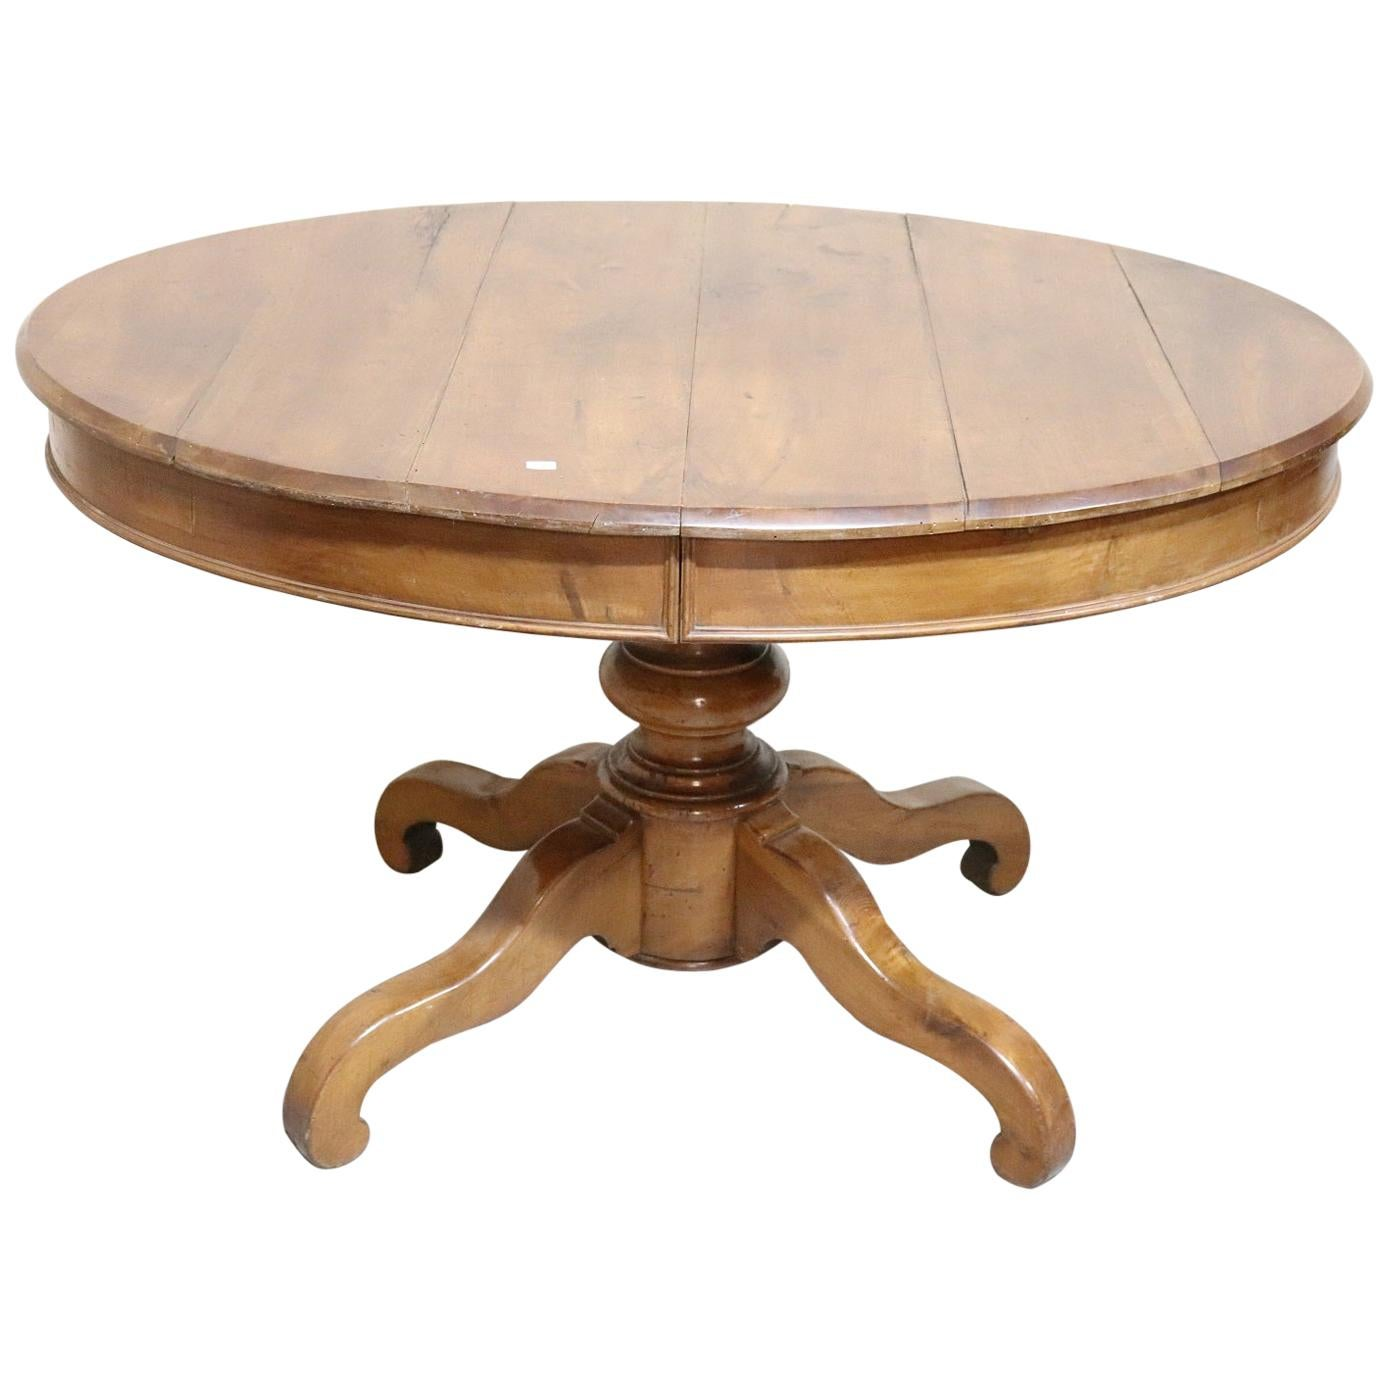 19th Century Italian Walnut Oval Extendable Antique Dining Room Table